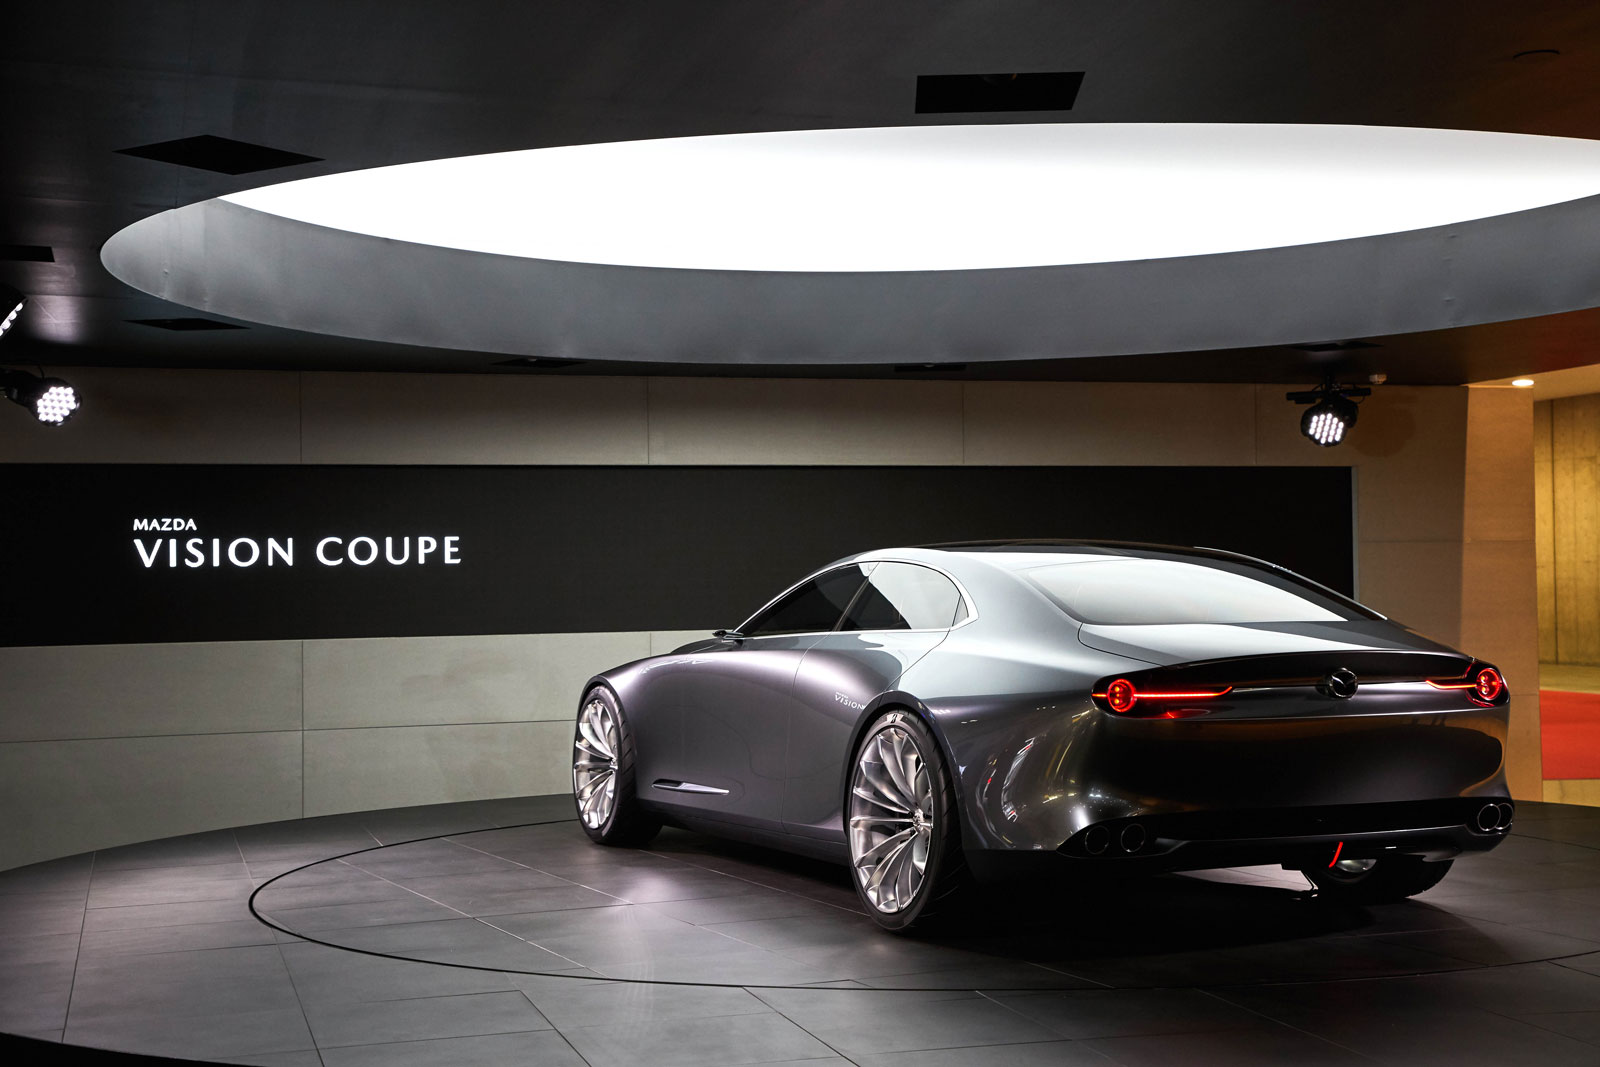 Mazda Vision Coupe Concept at the 2017 Tokyo Show